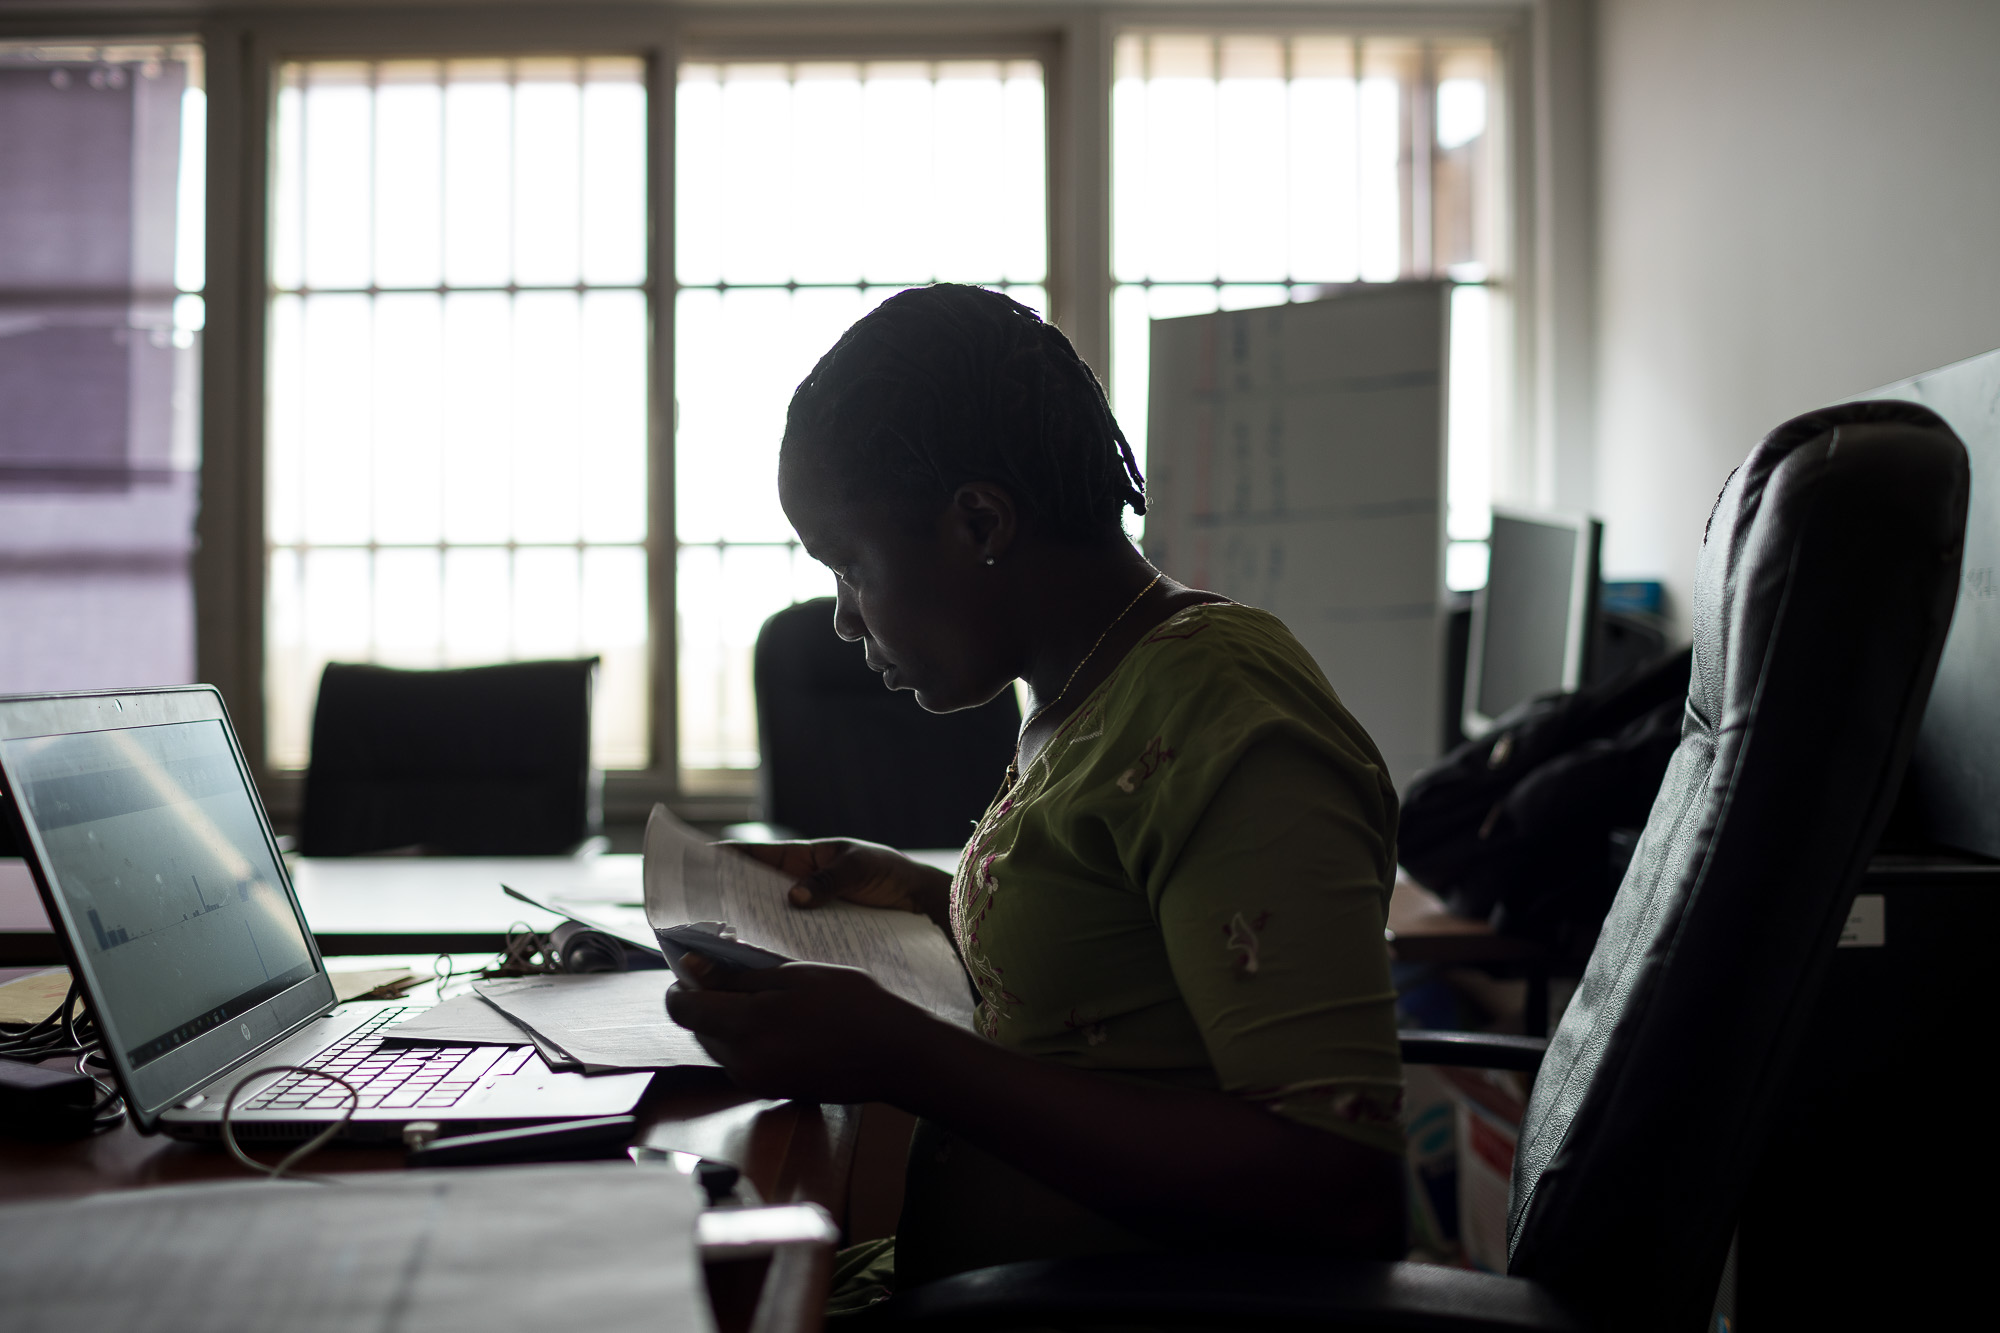 MONROVIA, LIBERIA: August 23, 2017 -  During the Ebola outbreak that started in 2014 there was no centralized system for the Ministry of Health to communicate to all healthcare workers across the country at the same time. UNICEF and USAID teamed up to create a platform that utilized mobile phones to facilitate a two way communication system between healthcare workers and the centralized ministry. Now healthcare workers receive text messages on their phones with vital information when there is a health emergency. They can also use their phones to send important information like the status of supply stocks in the clinic. Photo by Morgana Wingard